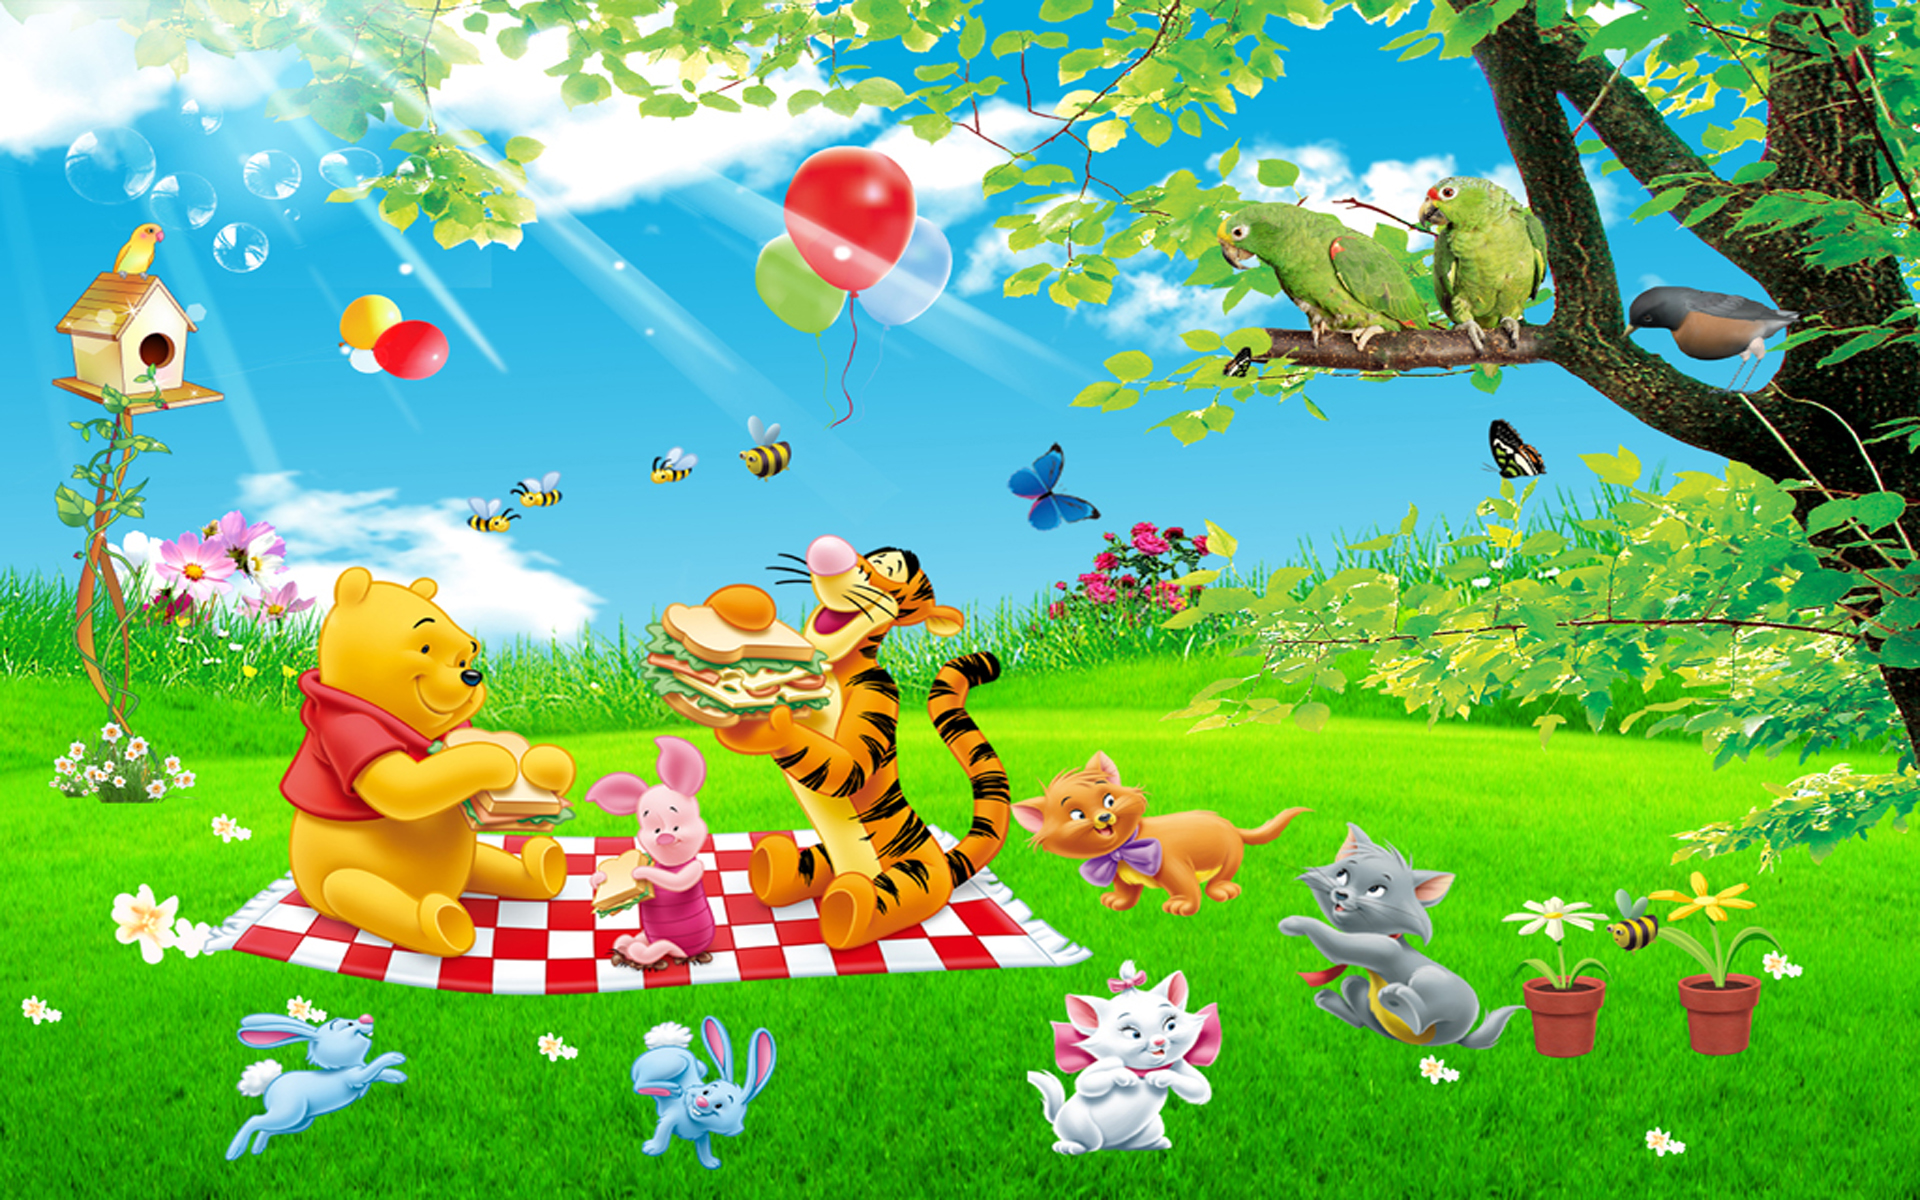 Fall Harvest Wallpaper 1024x768 Cartoon Tigger Piglet And Winnie The Pooh Picnic Summer